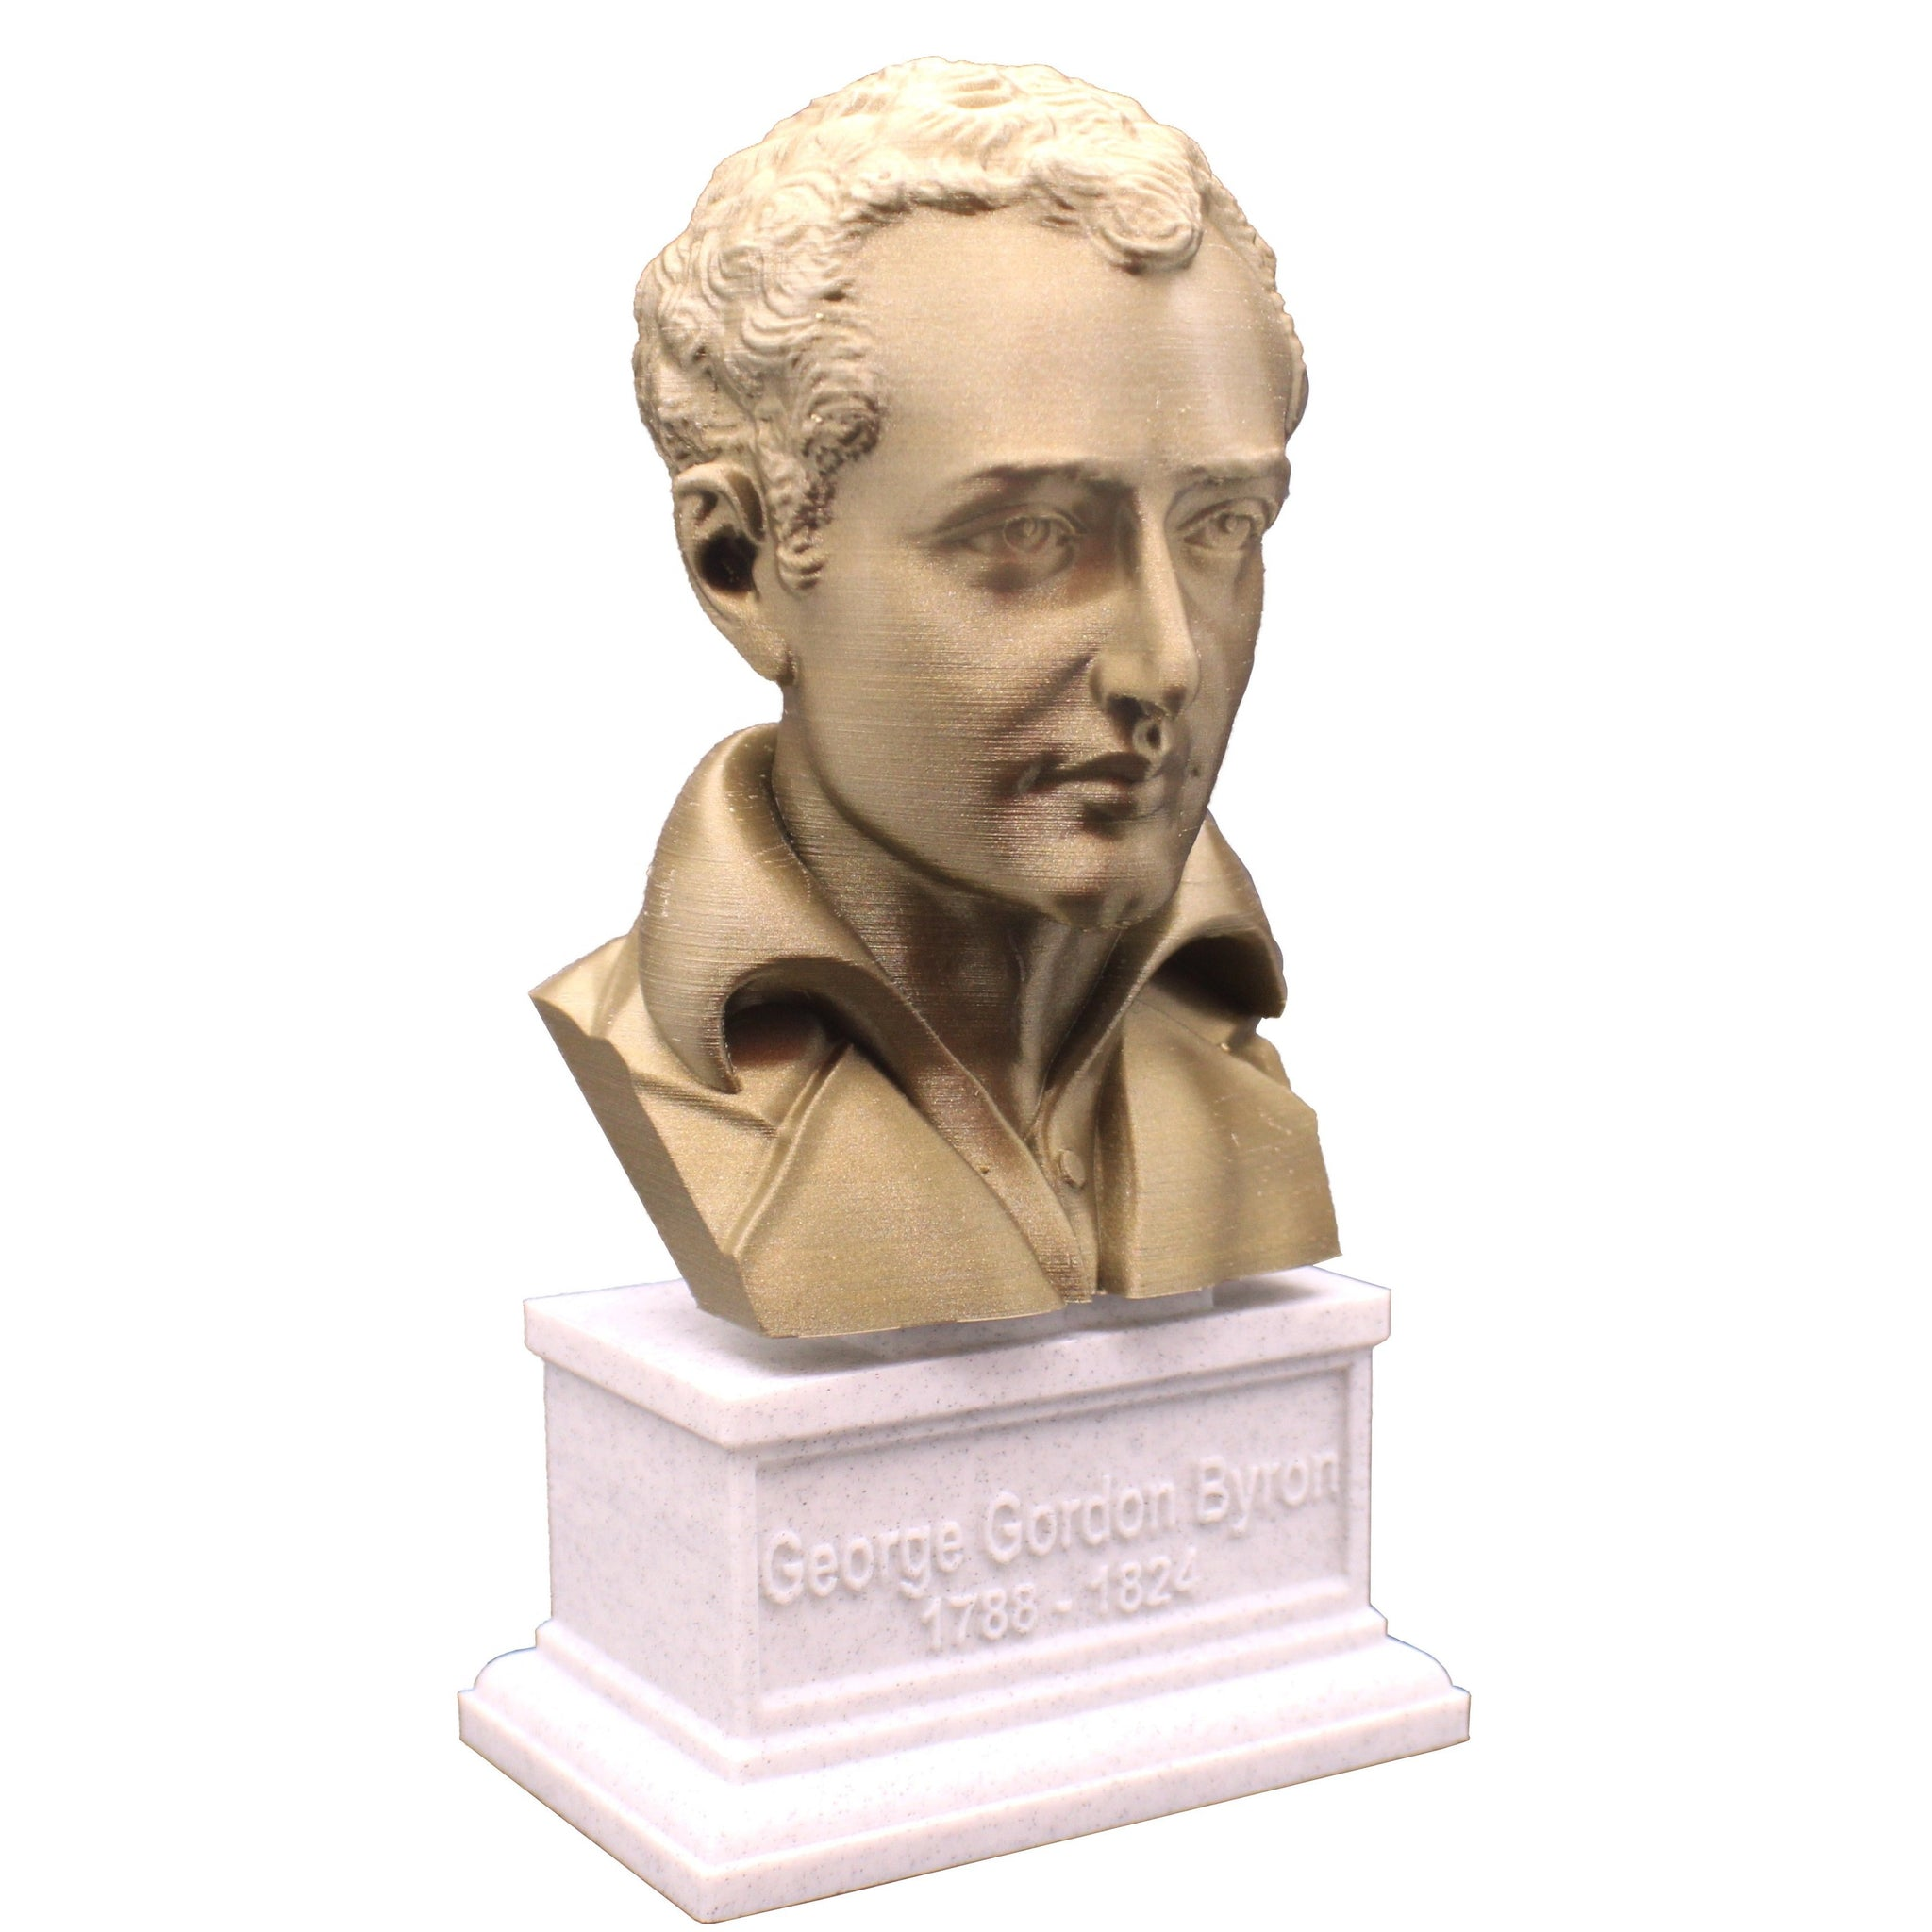 George Gordon Byron (Lord Byron), English Poet, Politician, and Revolutionary, Sculpture Bust on Box Plinth